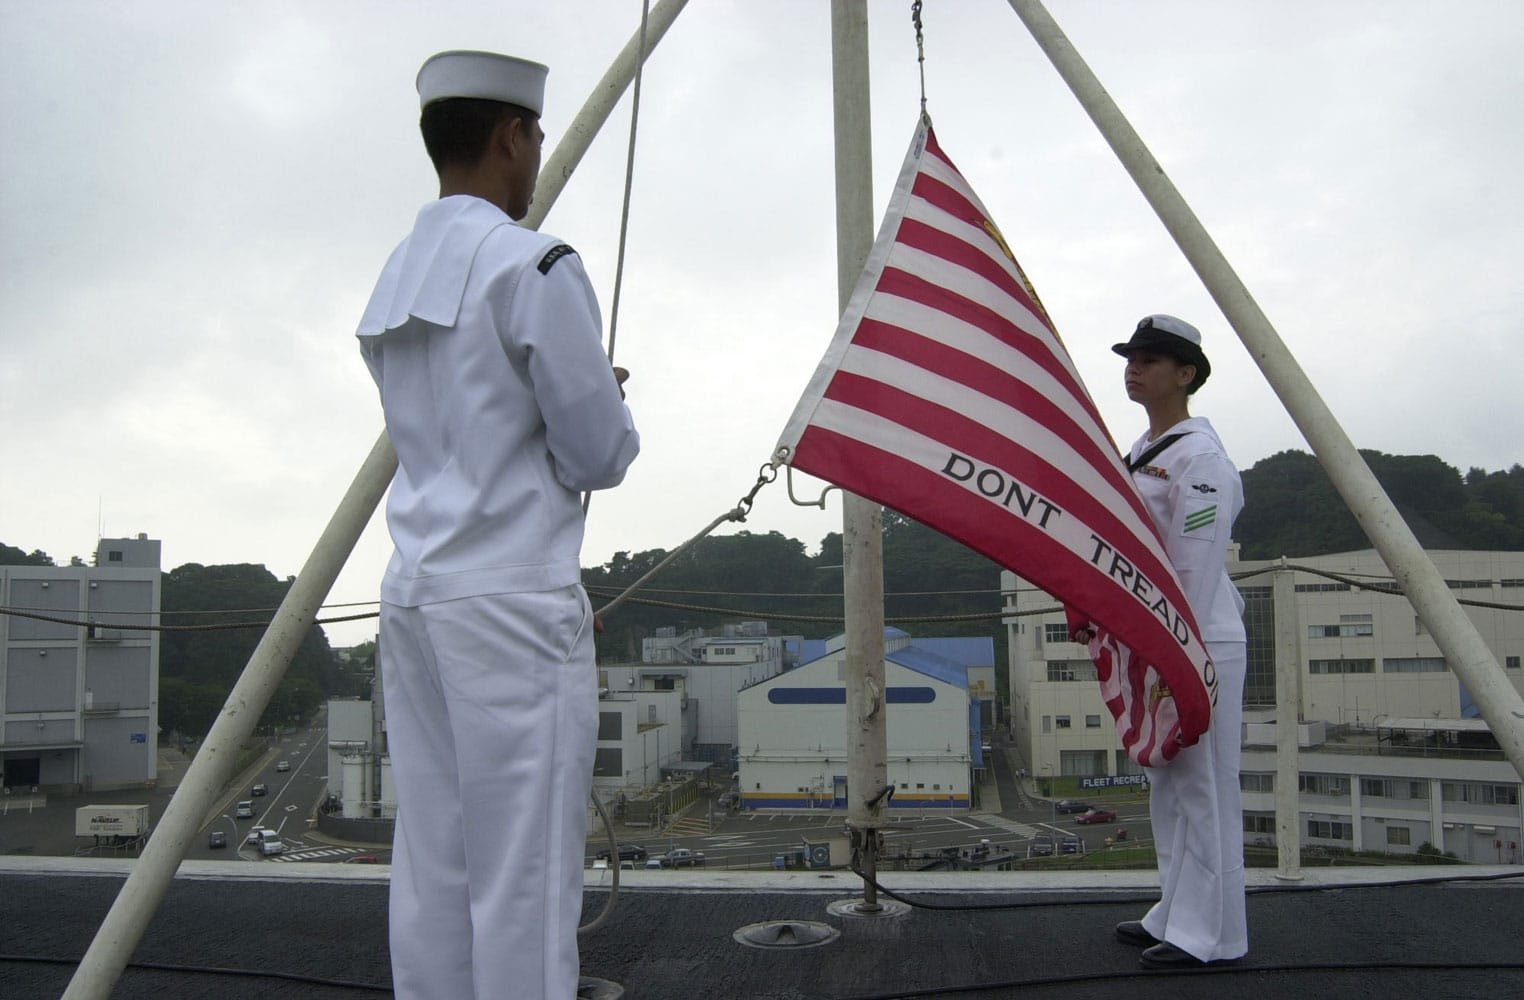 A special memorial service is being held in remembrance of those lost during the events of September 11, 2001. Under direction of the Secretary of the Navy, Gordon R. England, all U.S. Navy ships will fly the First Navy Jack in place of the Union Jack for the duration of the war on terrorism.